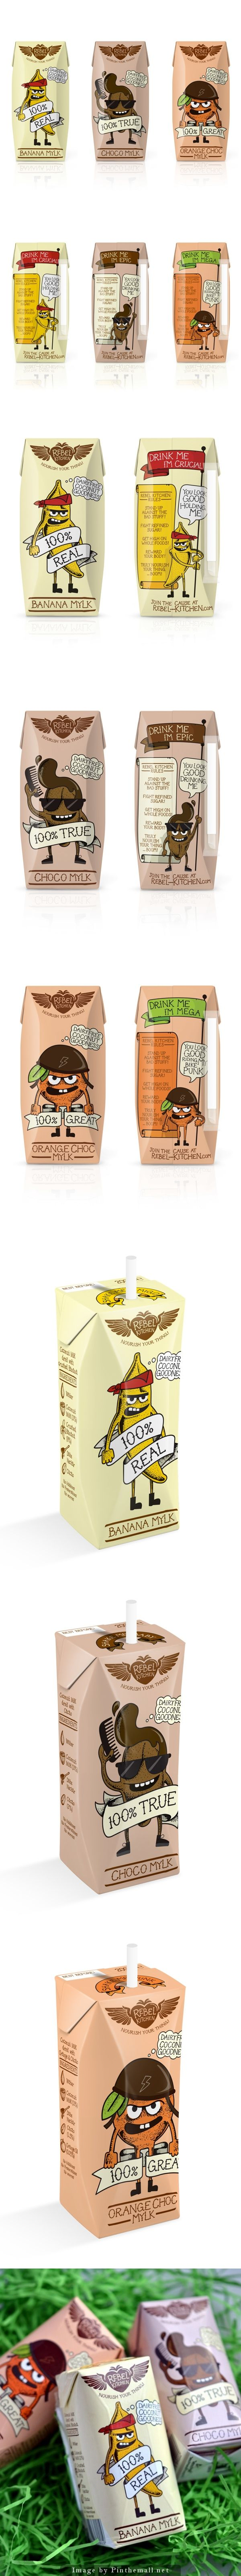 Rebel Kitchen - Kids Packaging